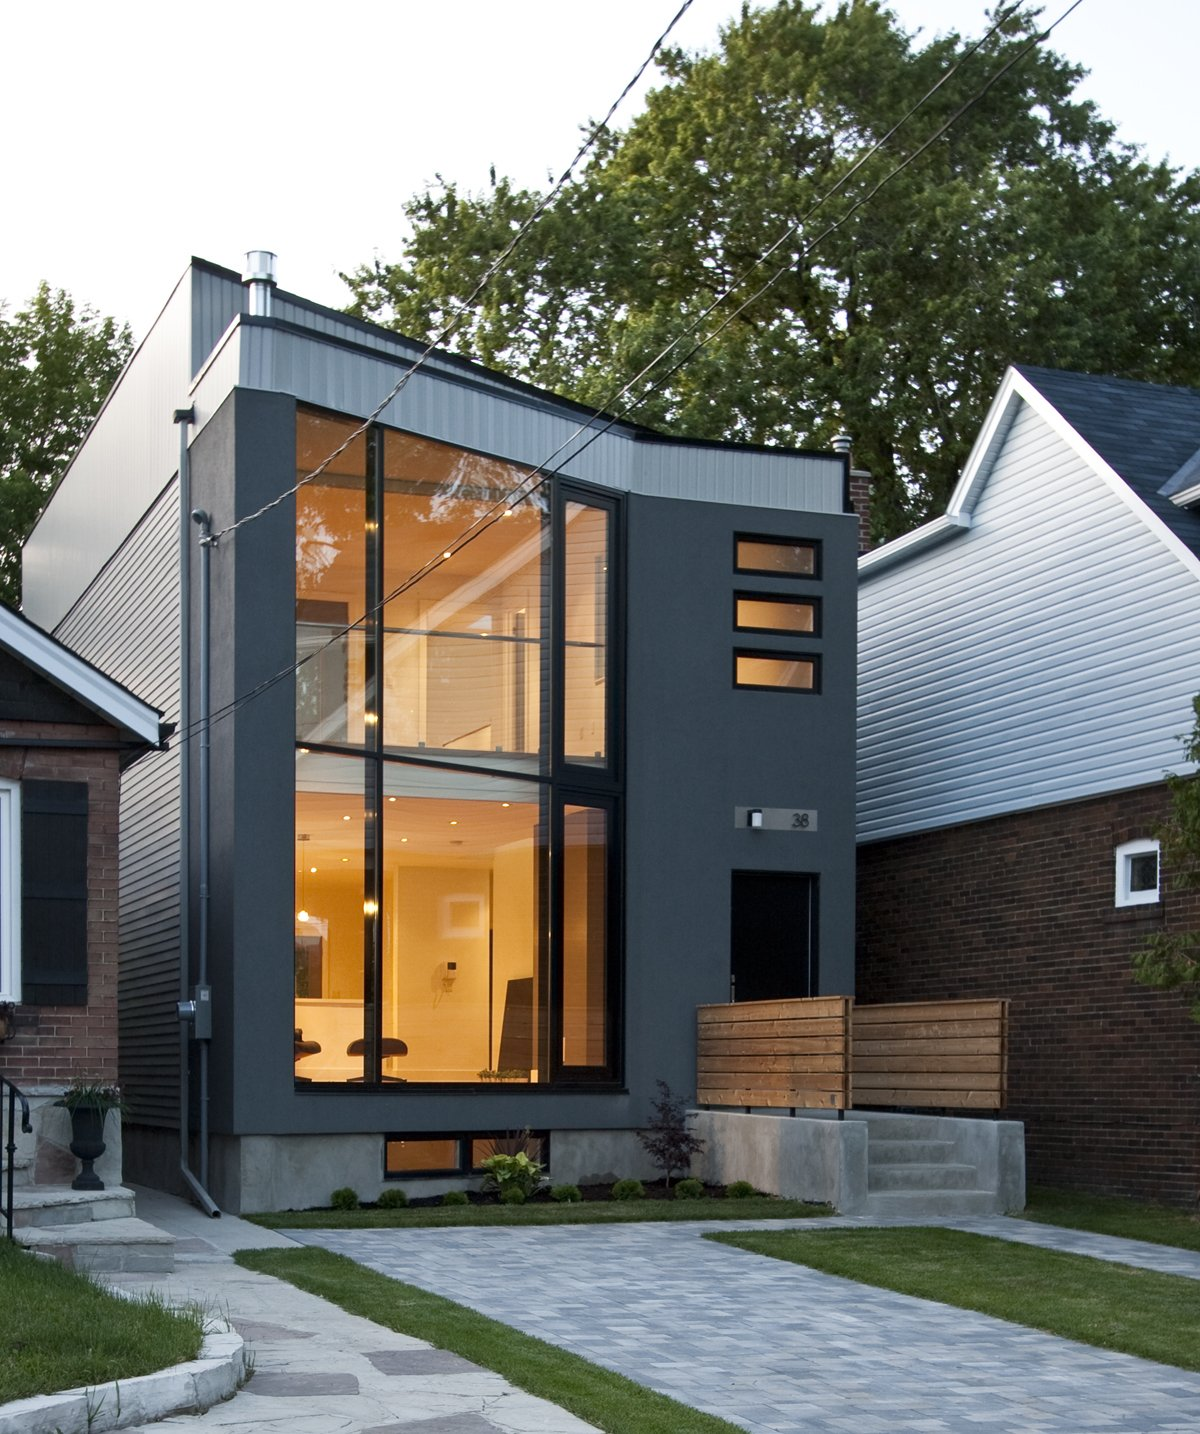 Small House Elevation Design House Elevation: 63˚ House Modern Home In Toronto, Ontario, Canada By Rzlbd